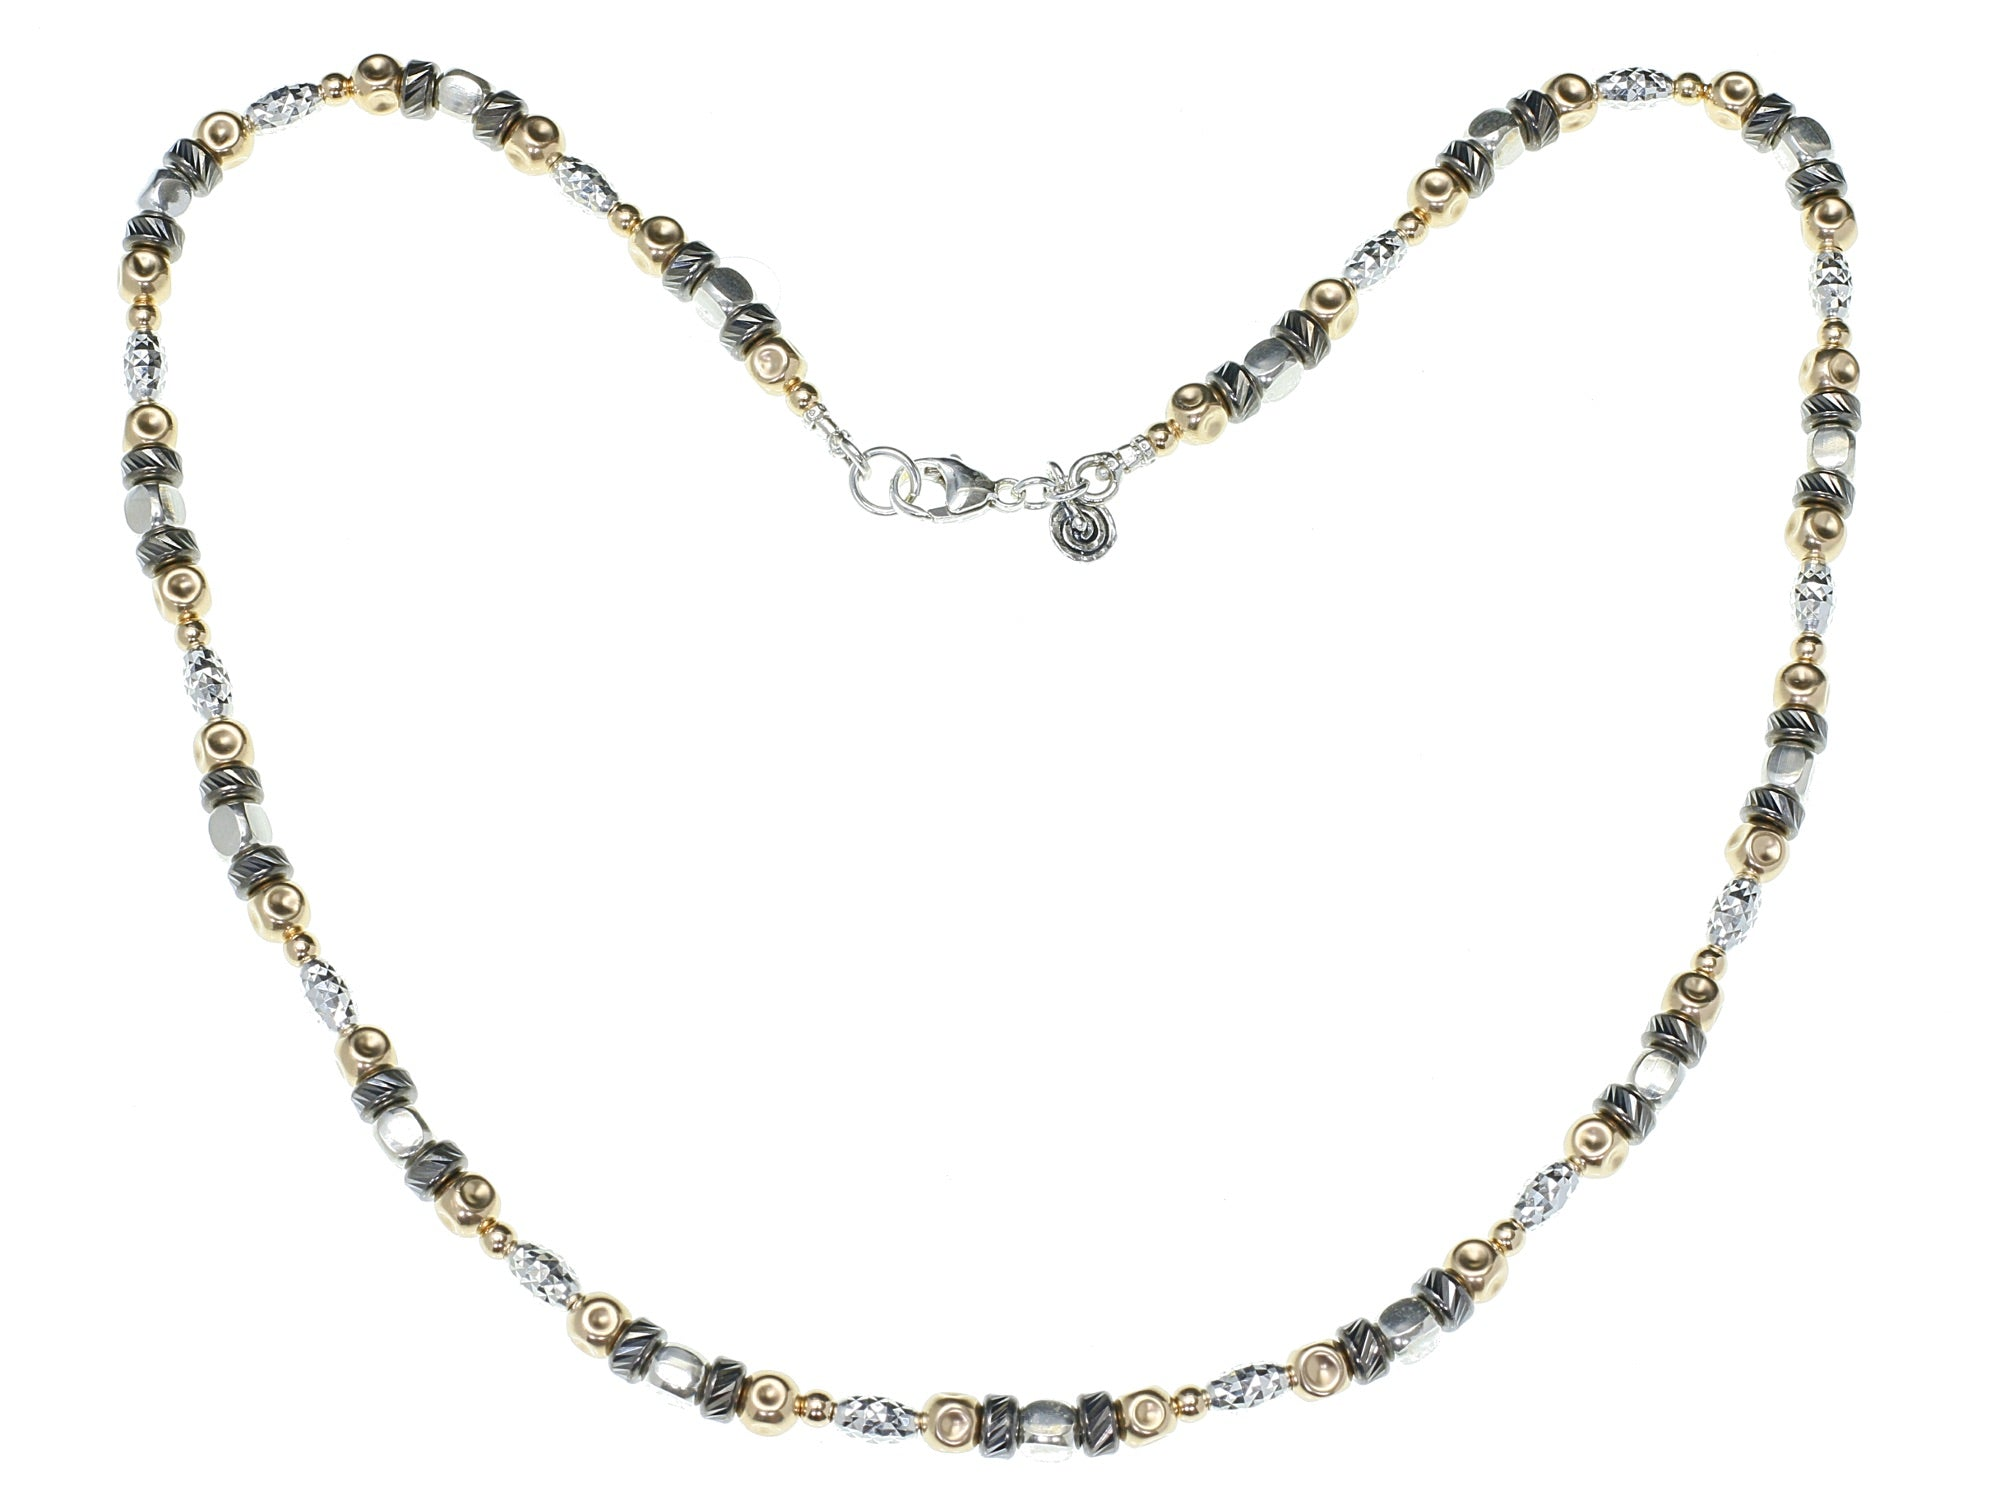 Oxidised Silver and Gold Sparkle Necklace